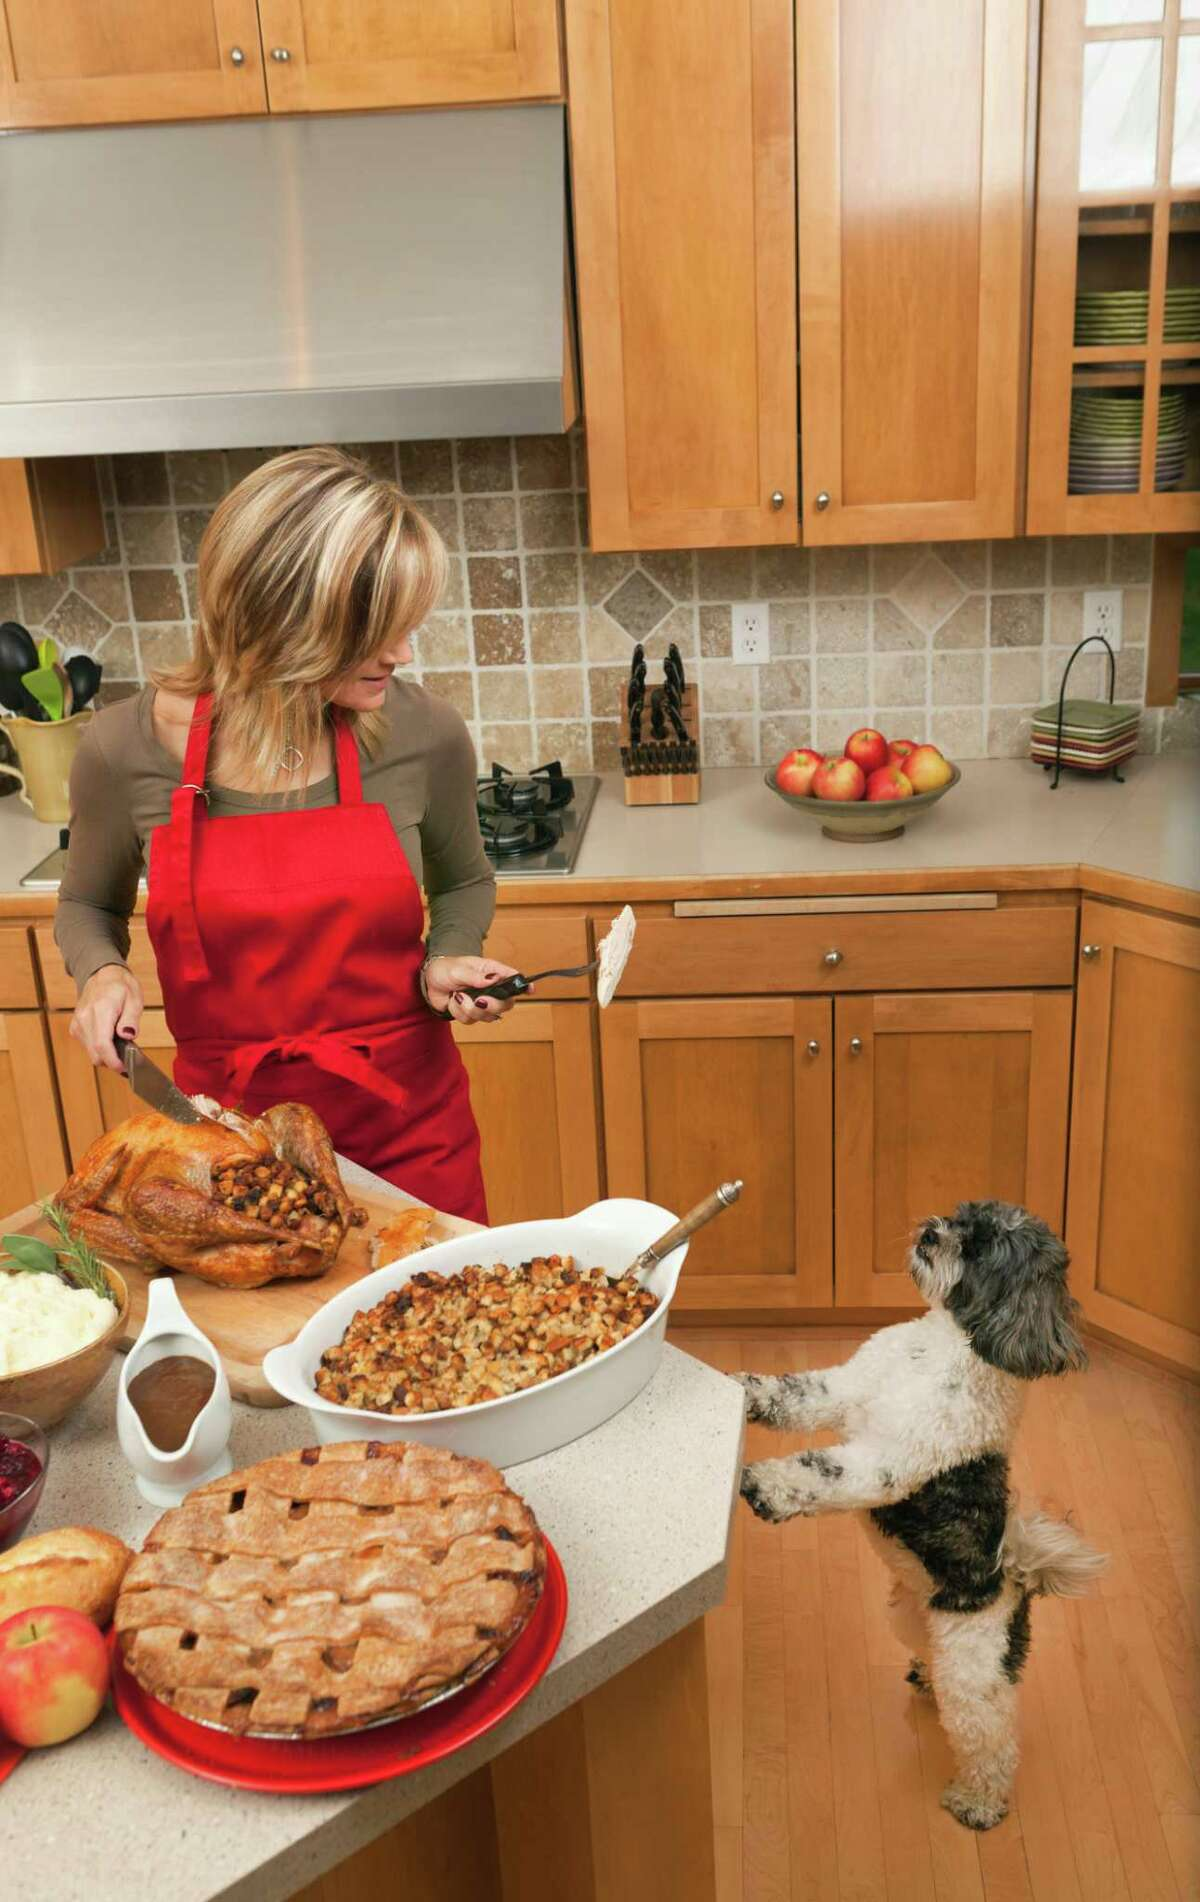 Don't leave food out where your pet can get to it. And if you must, lock your pet in another room.